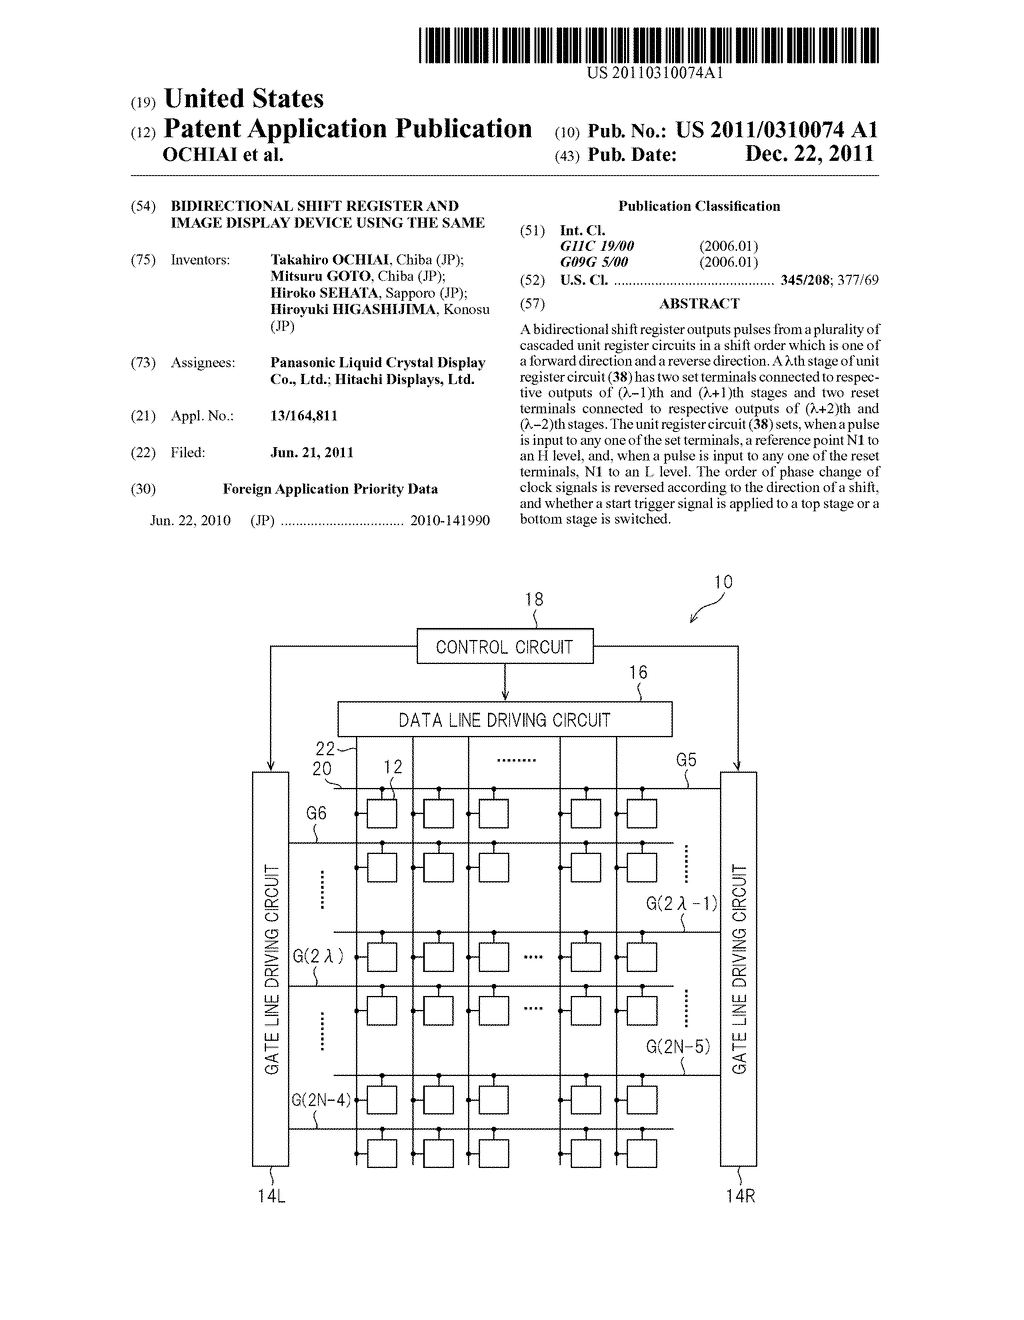 BIDIRECTIONAL SHIFT REGISTER AND IMAGE DISPLAY DEVICE USING THE SAME - diagram, schematic, and image 01